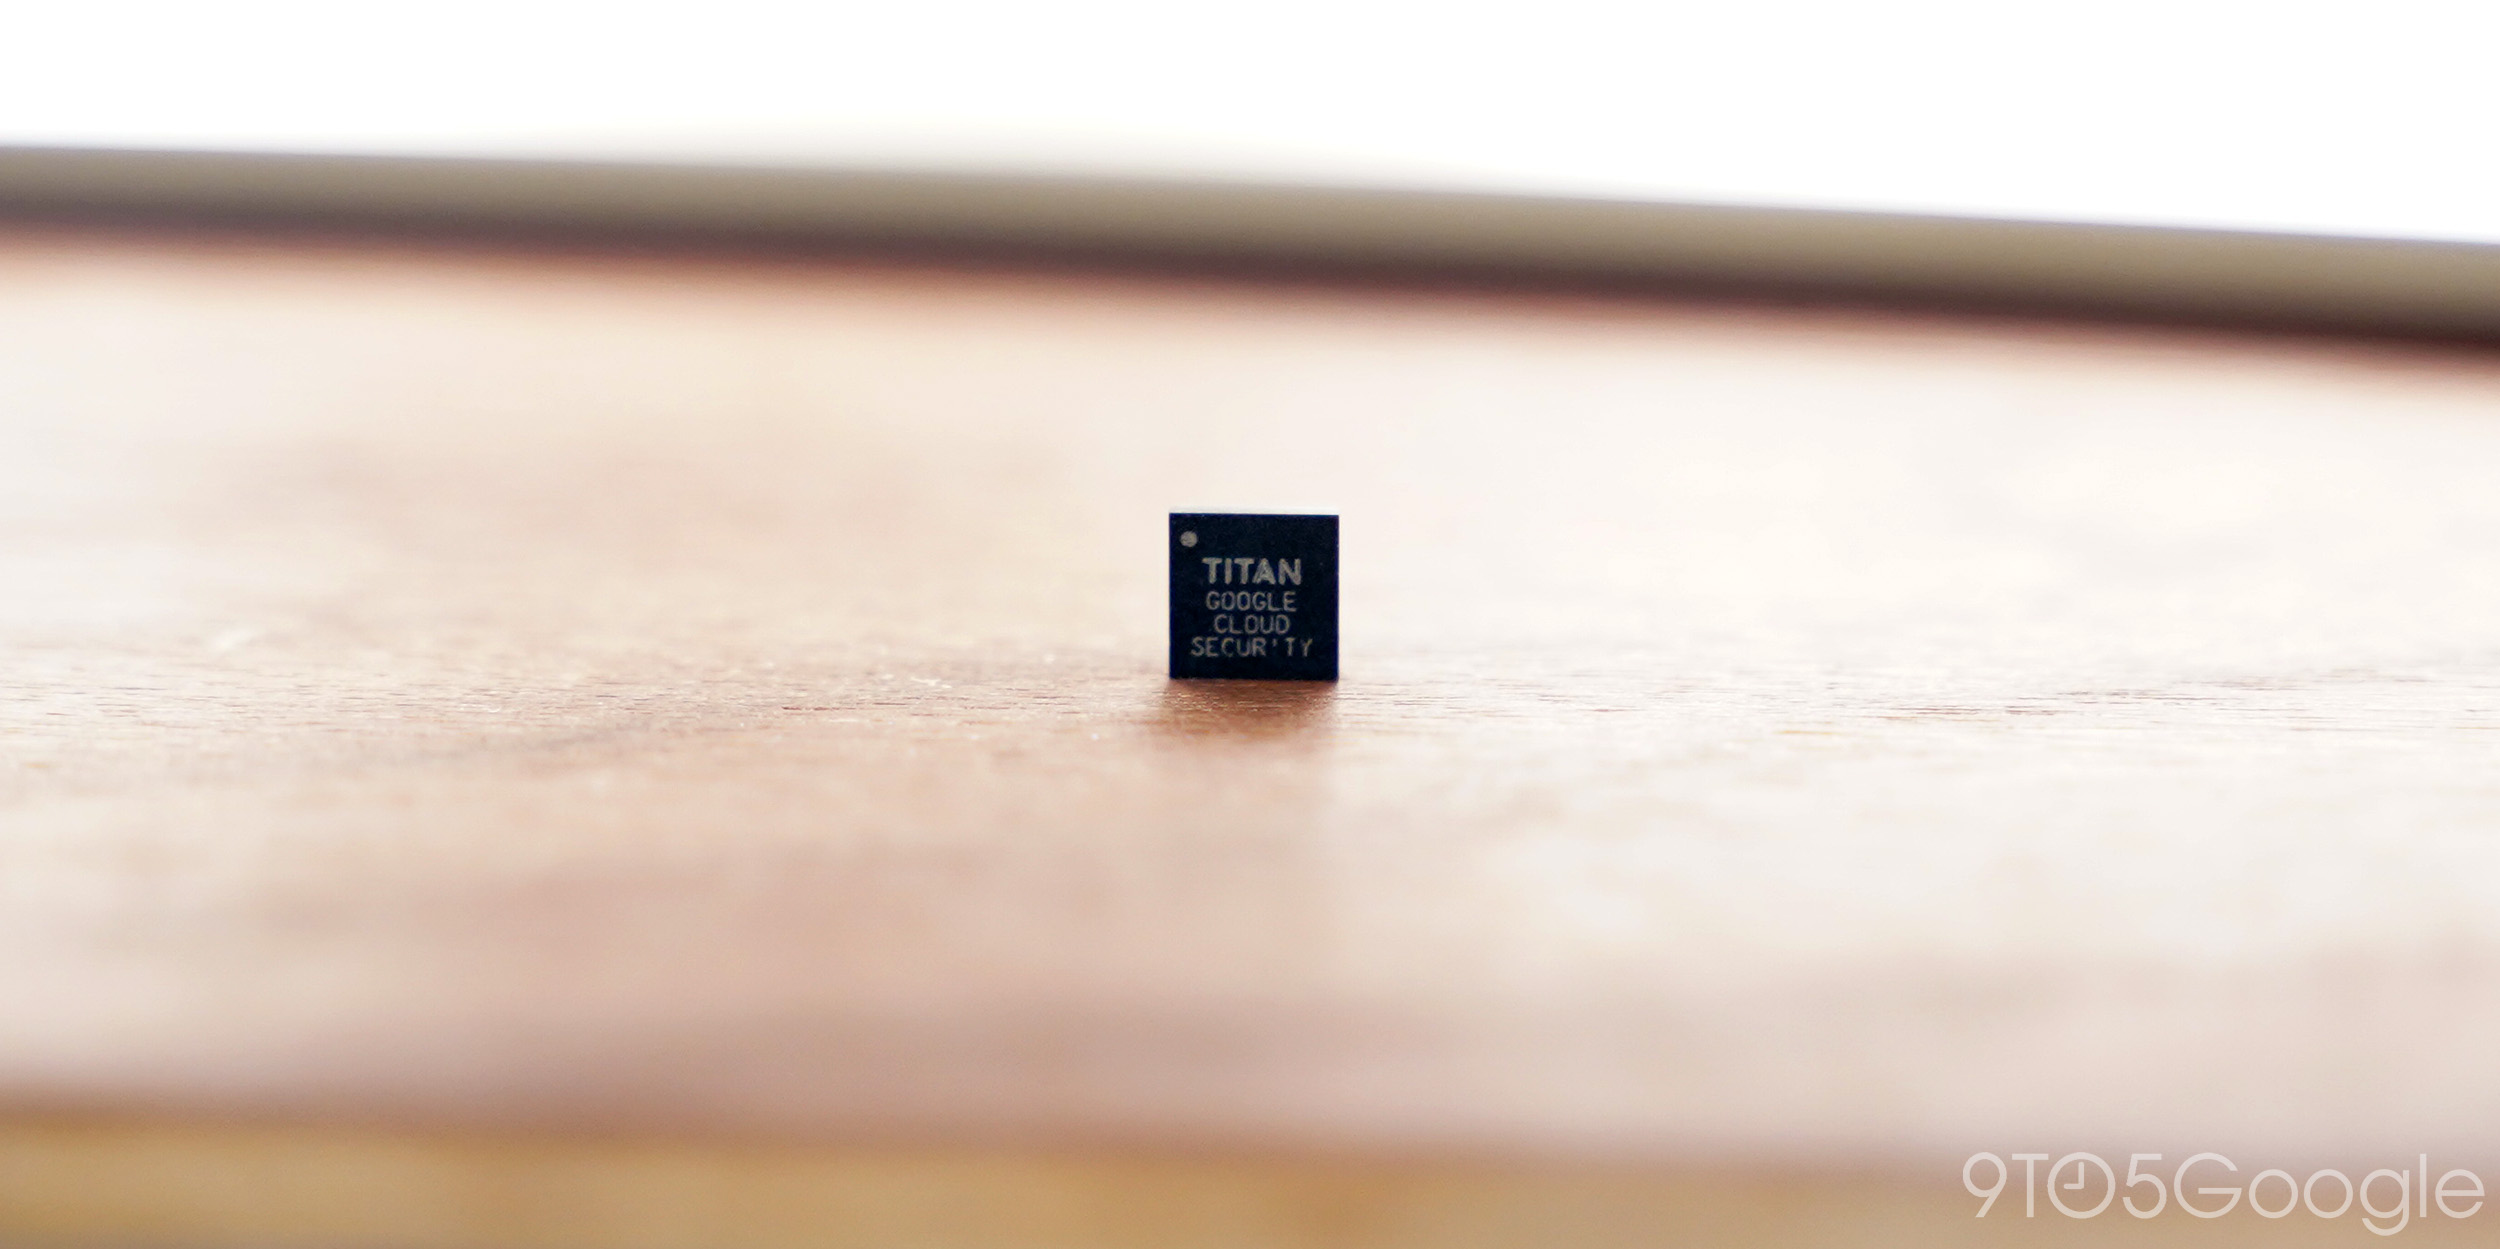 Google wants an open source silicon community for chip design